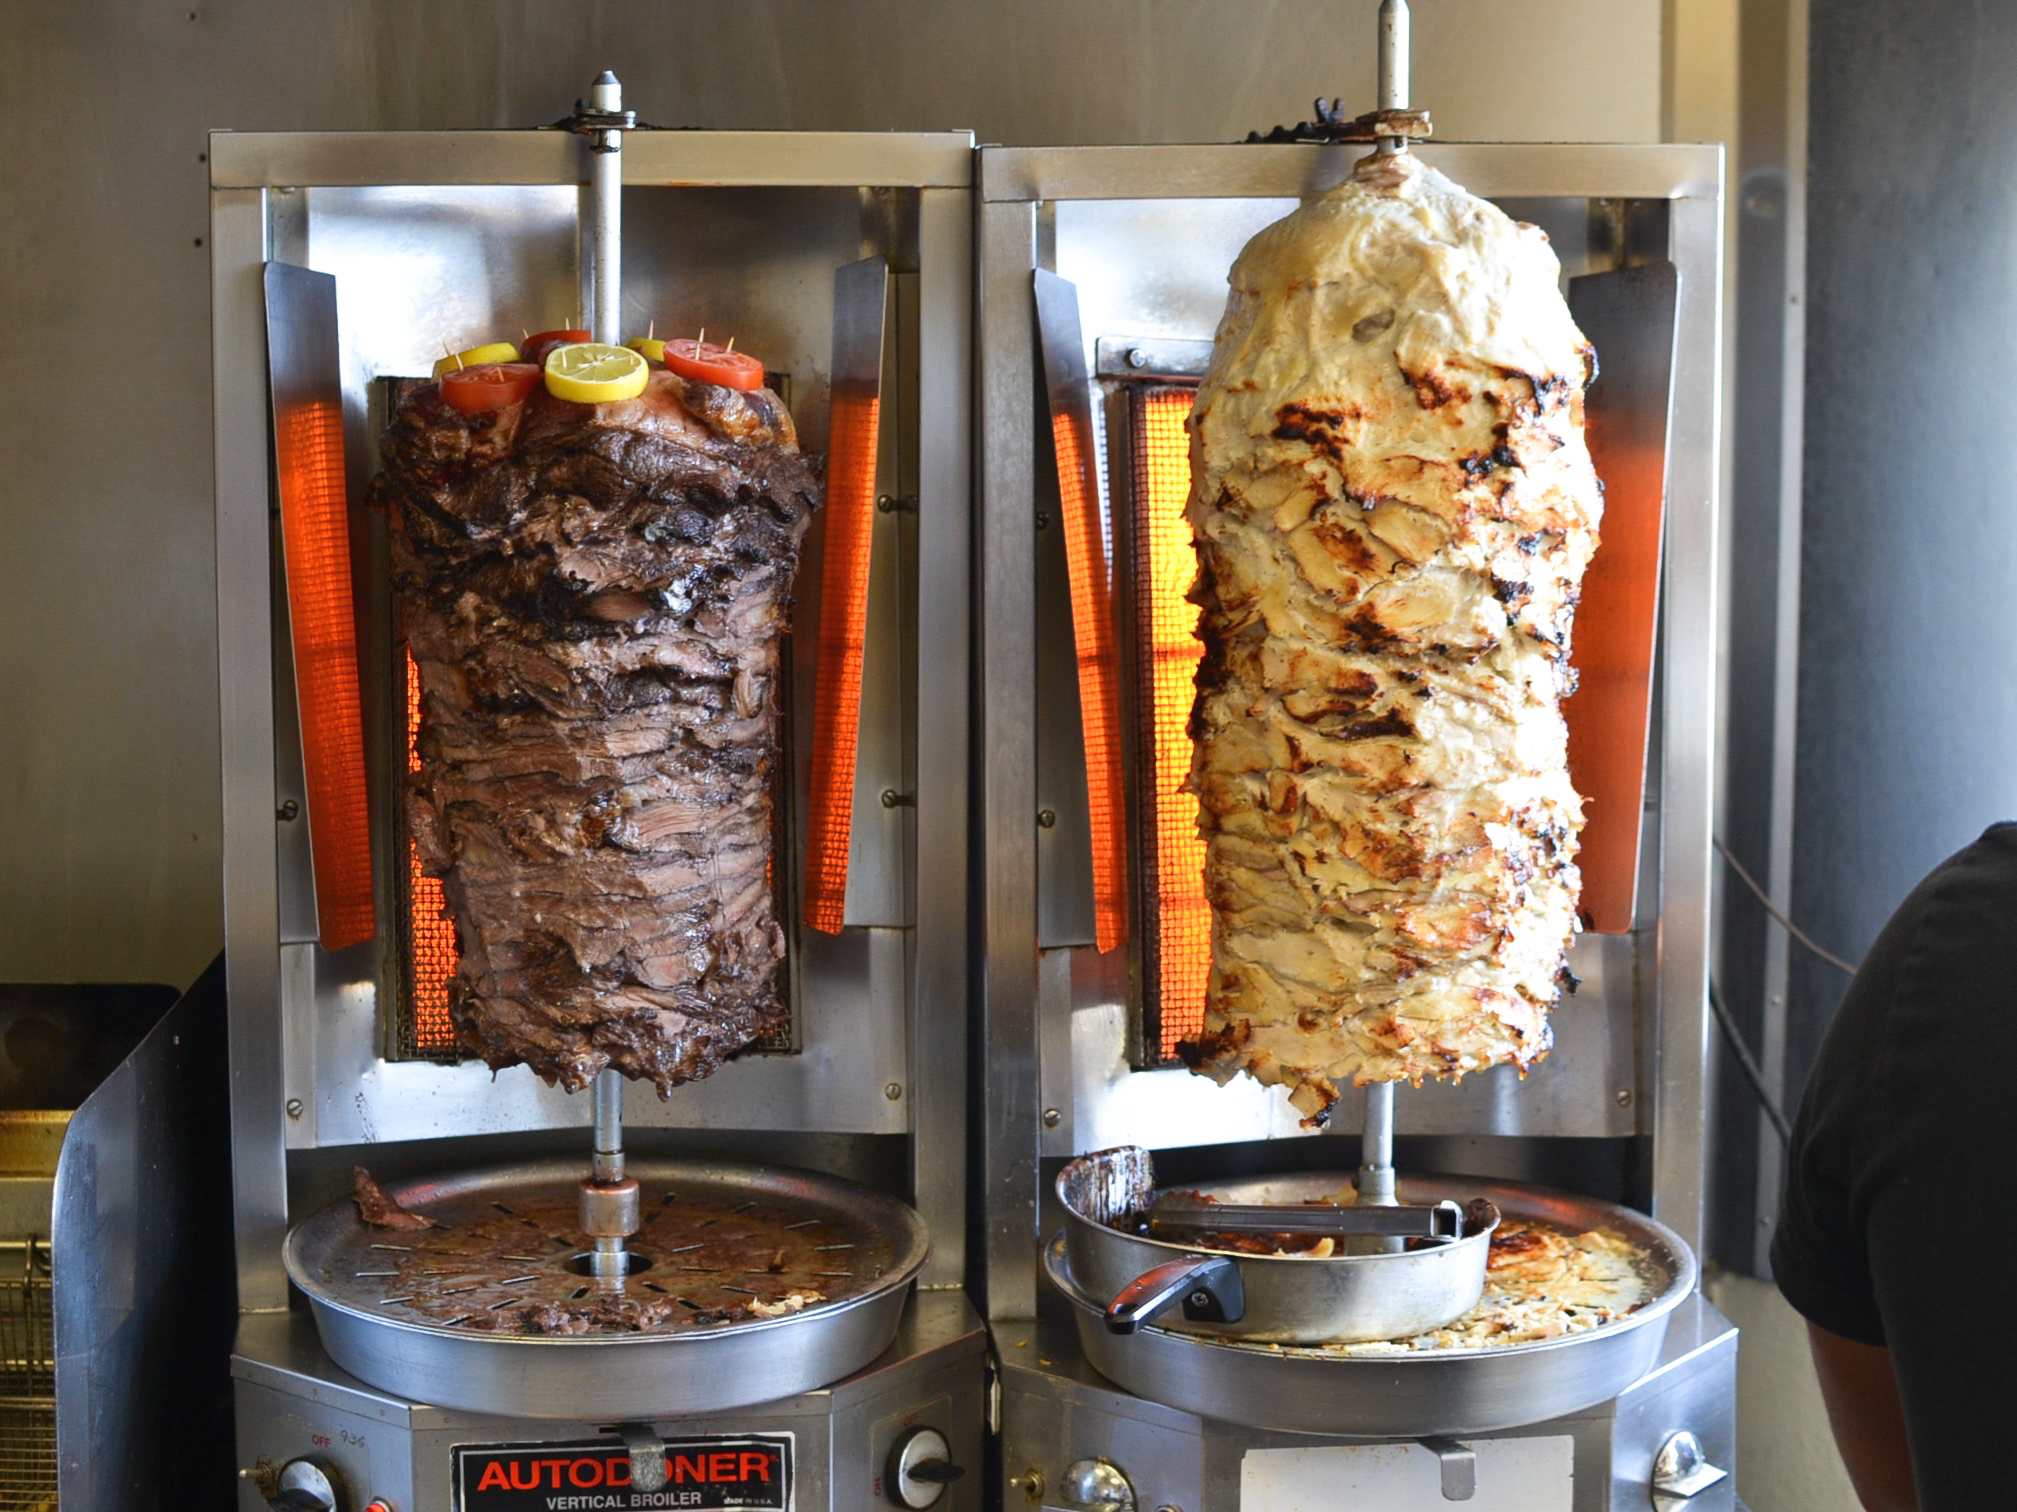 The 10 Finest Shawarma Specialists in Los Angeles